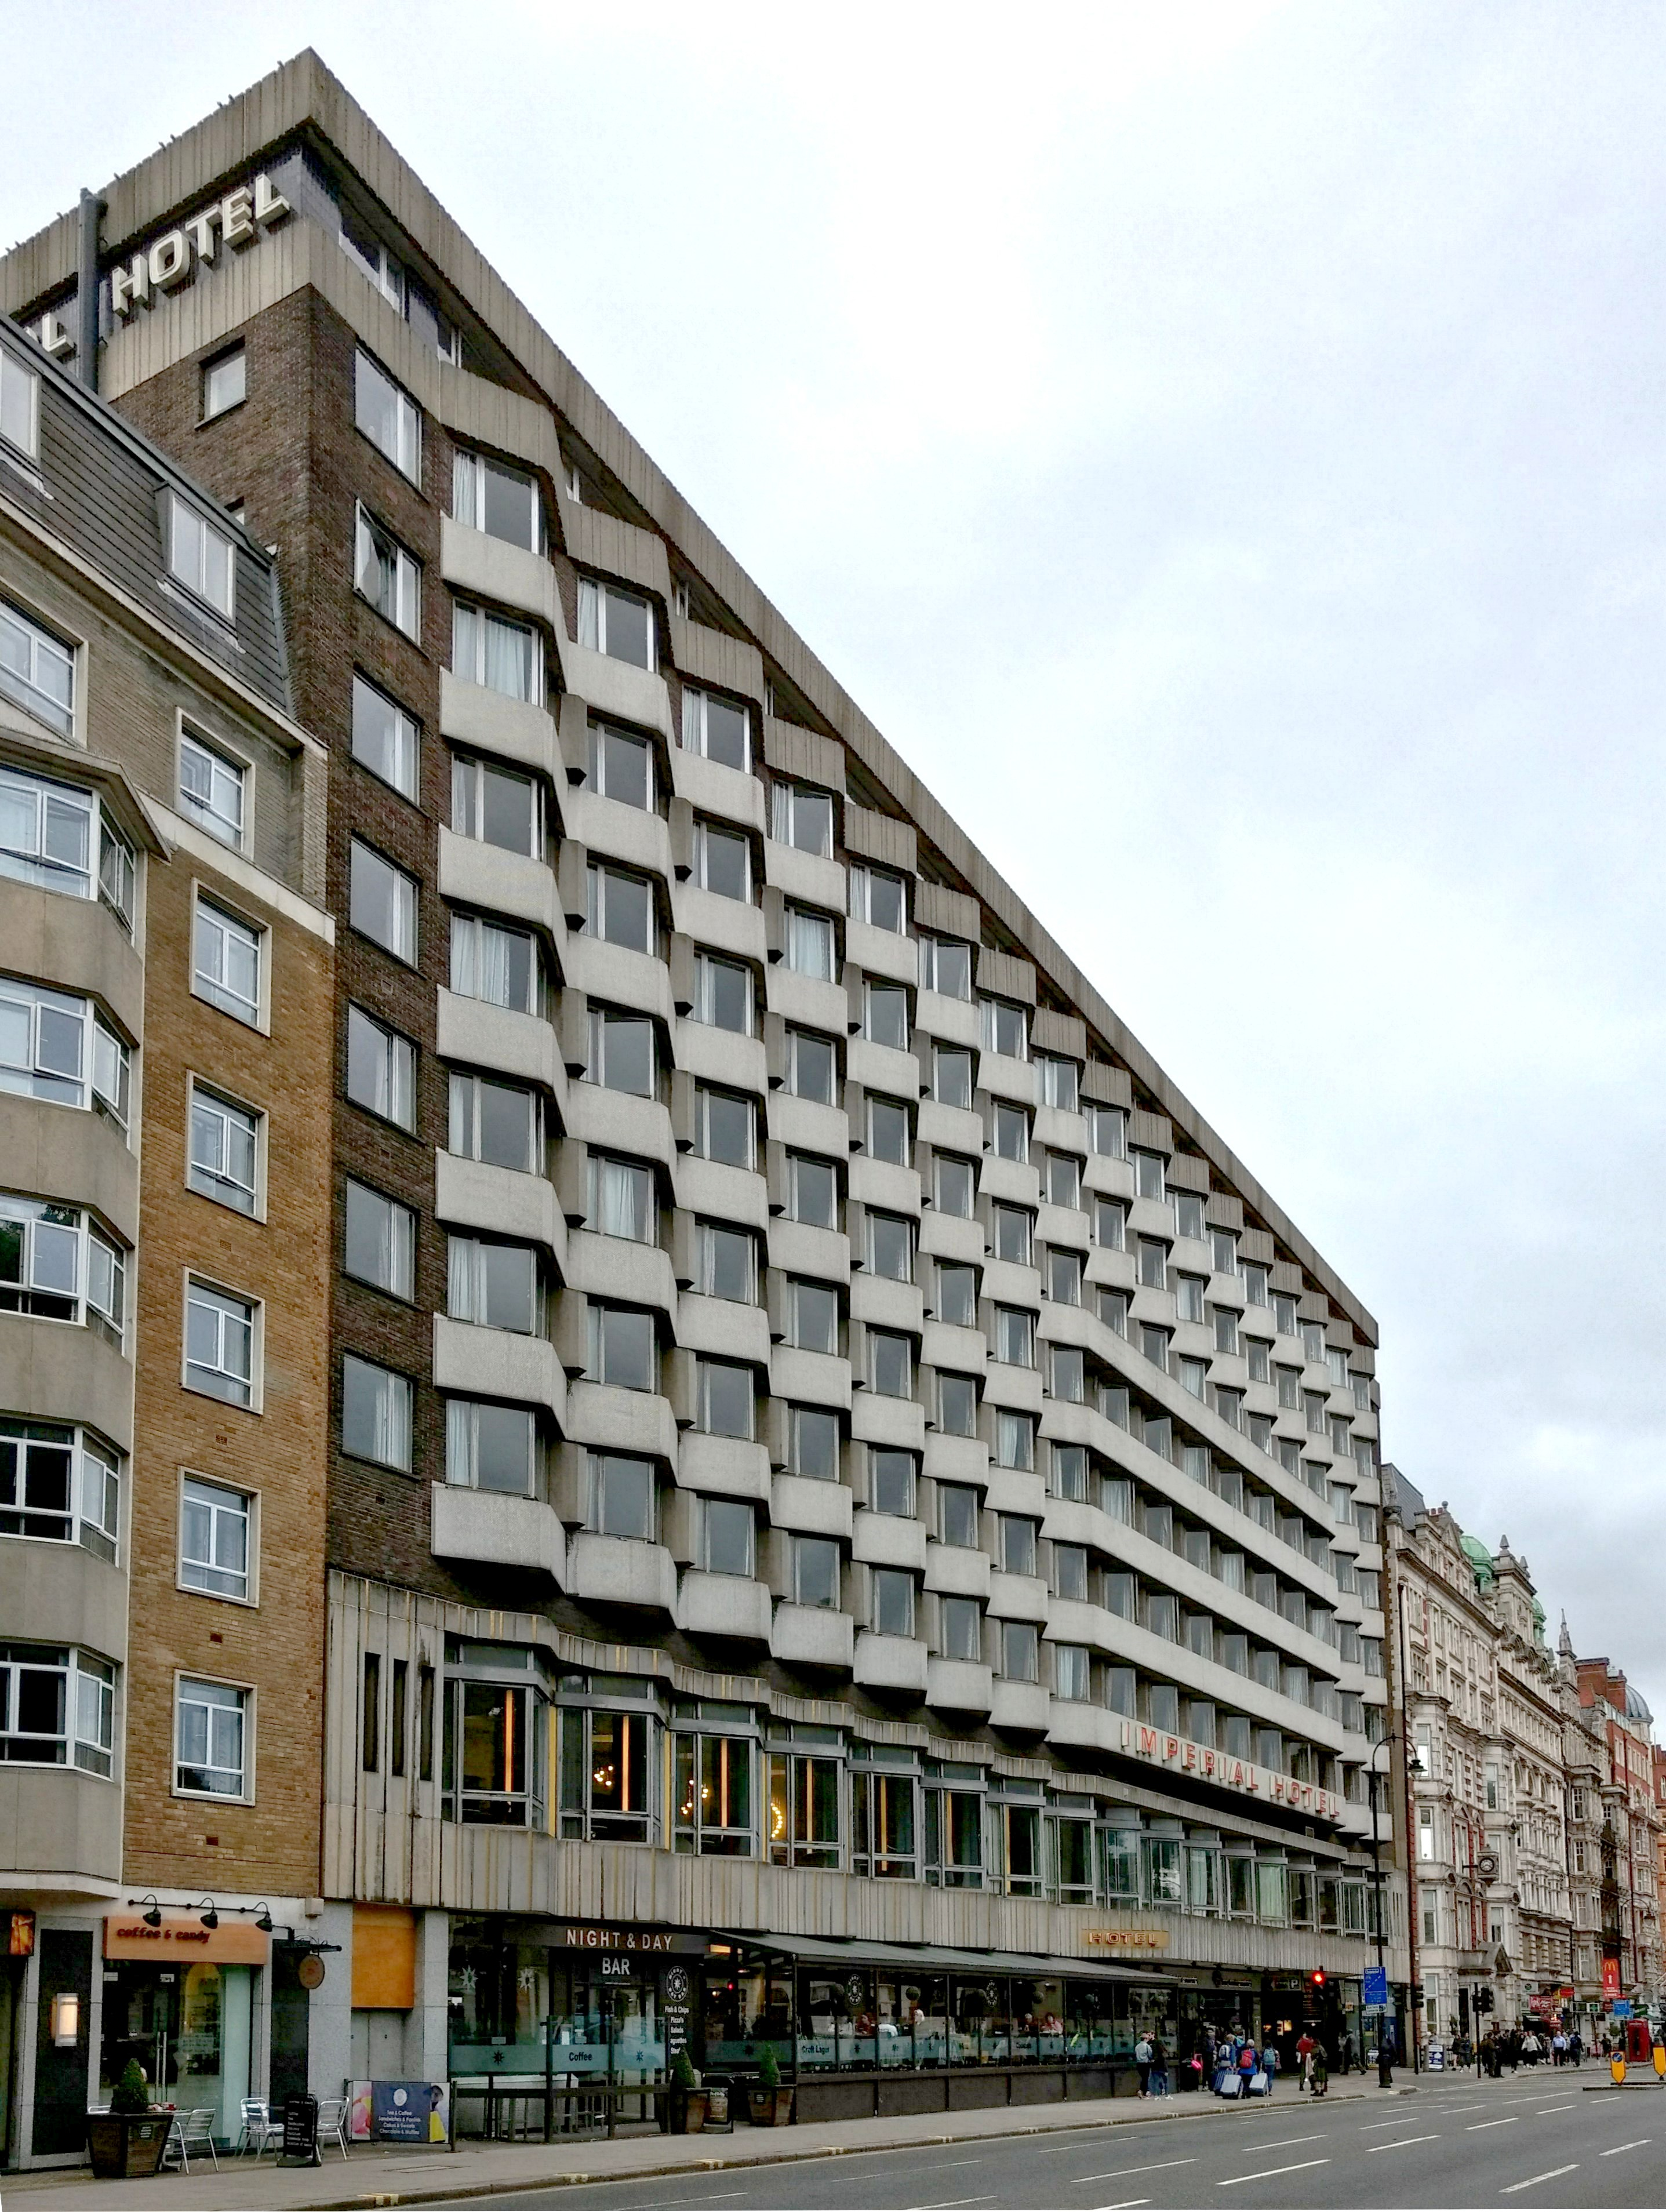 W Hotel London Piccadilly